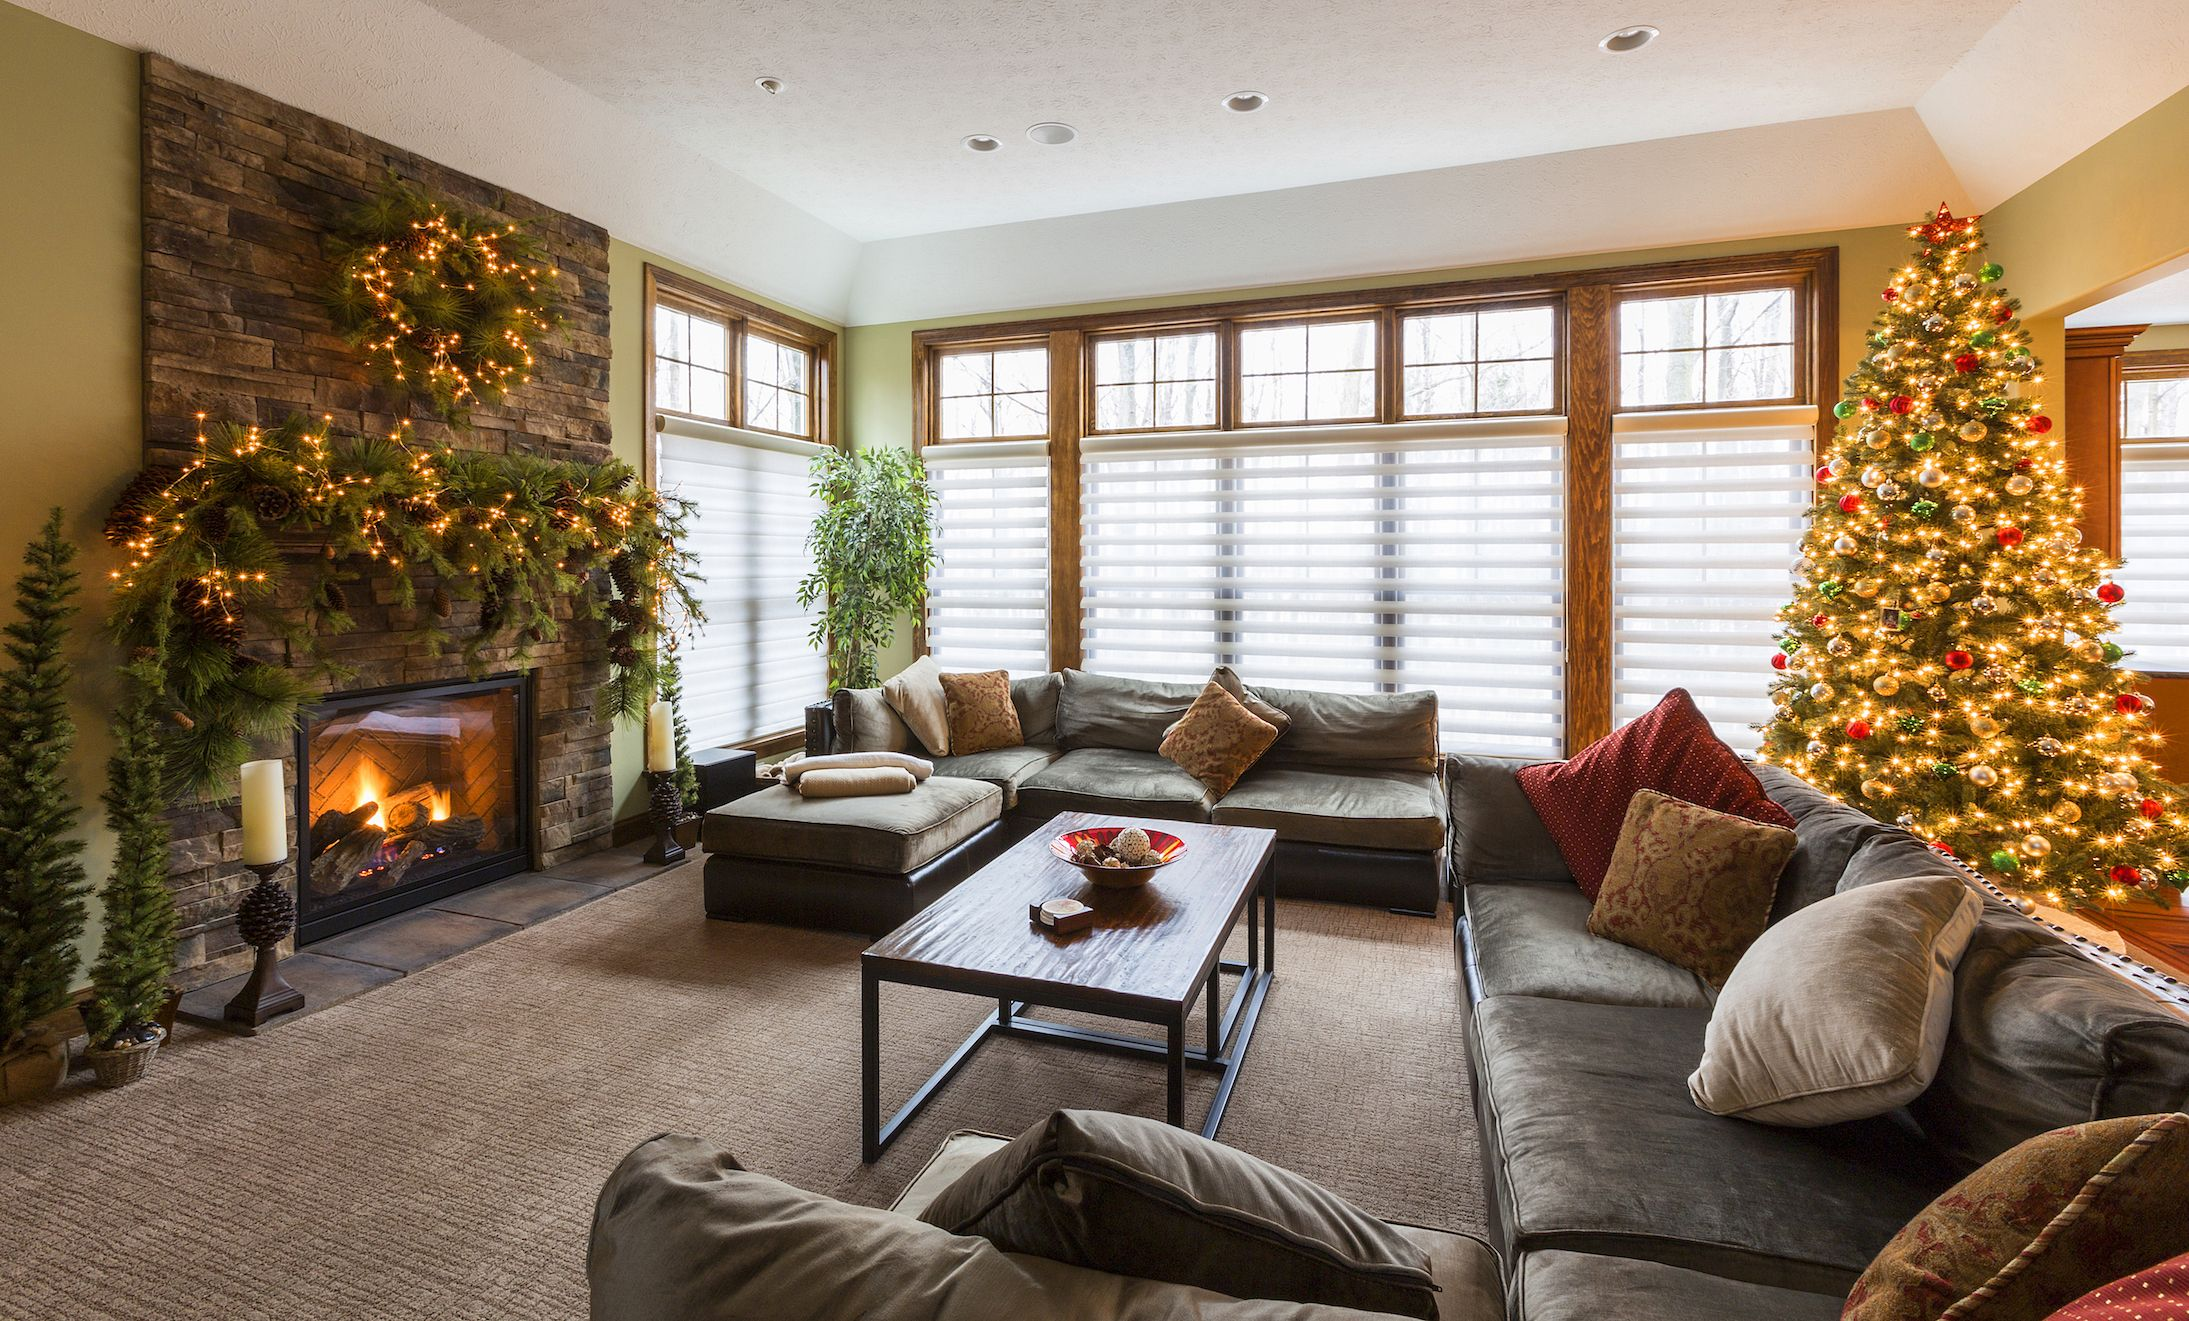 pictures of living room decorated for christmas large furniture sets 15 stunning rooms holiday decor ideas